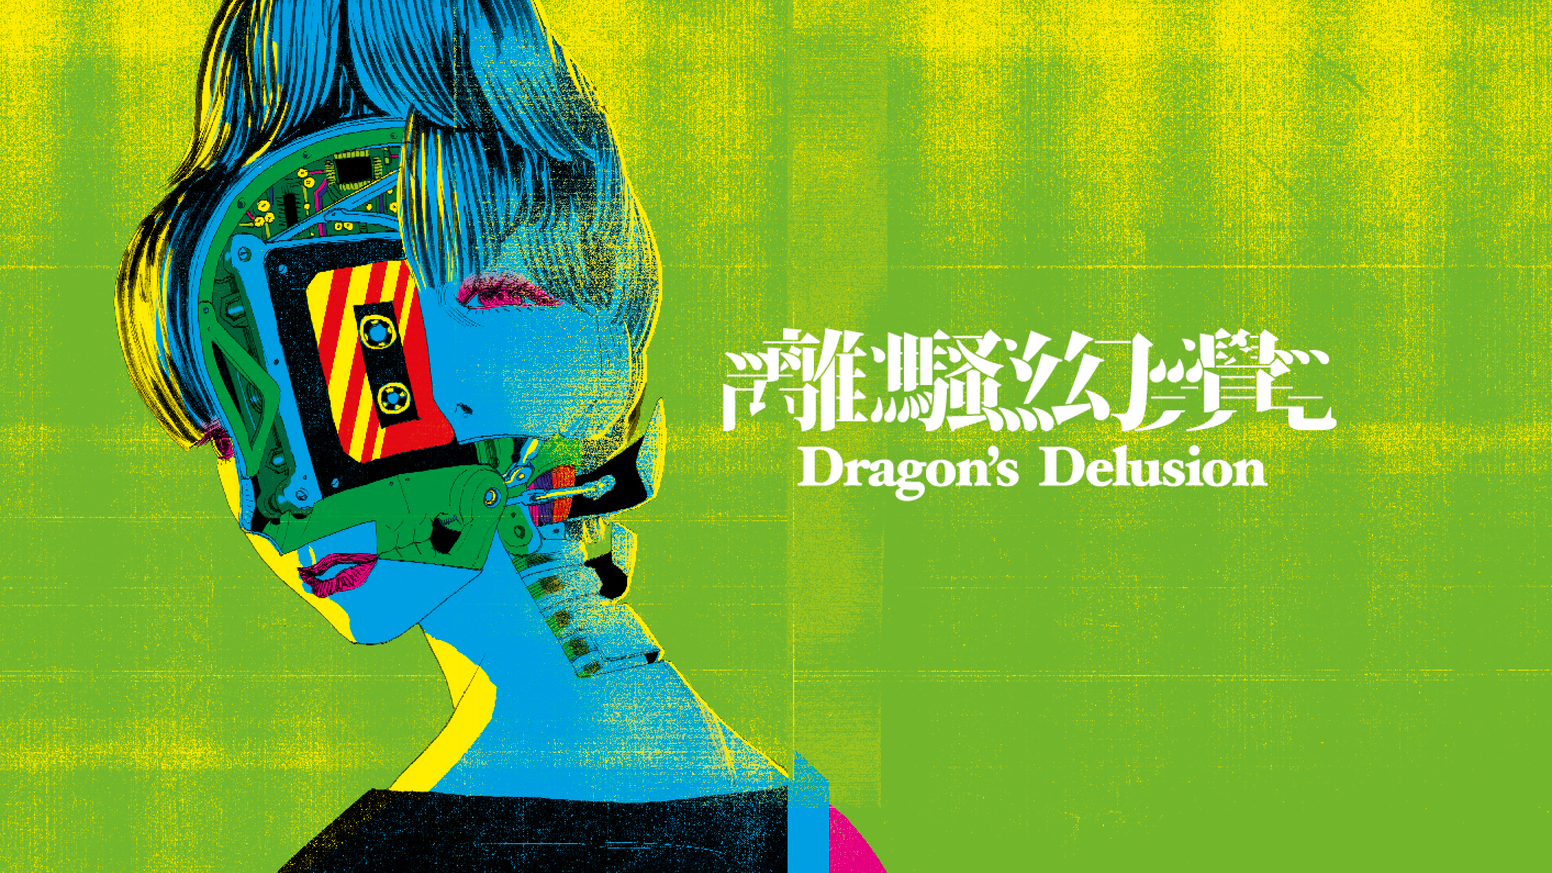 Dragon's Delusion: This is not just an animation. 